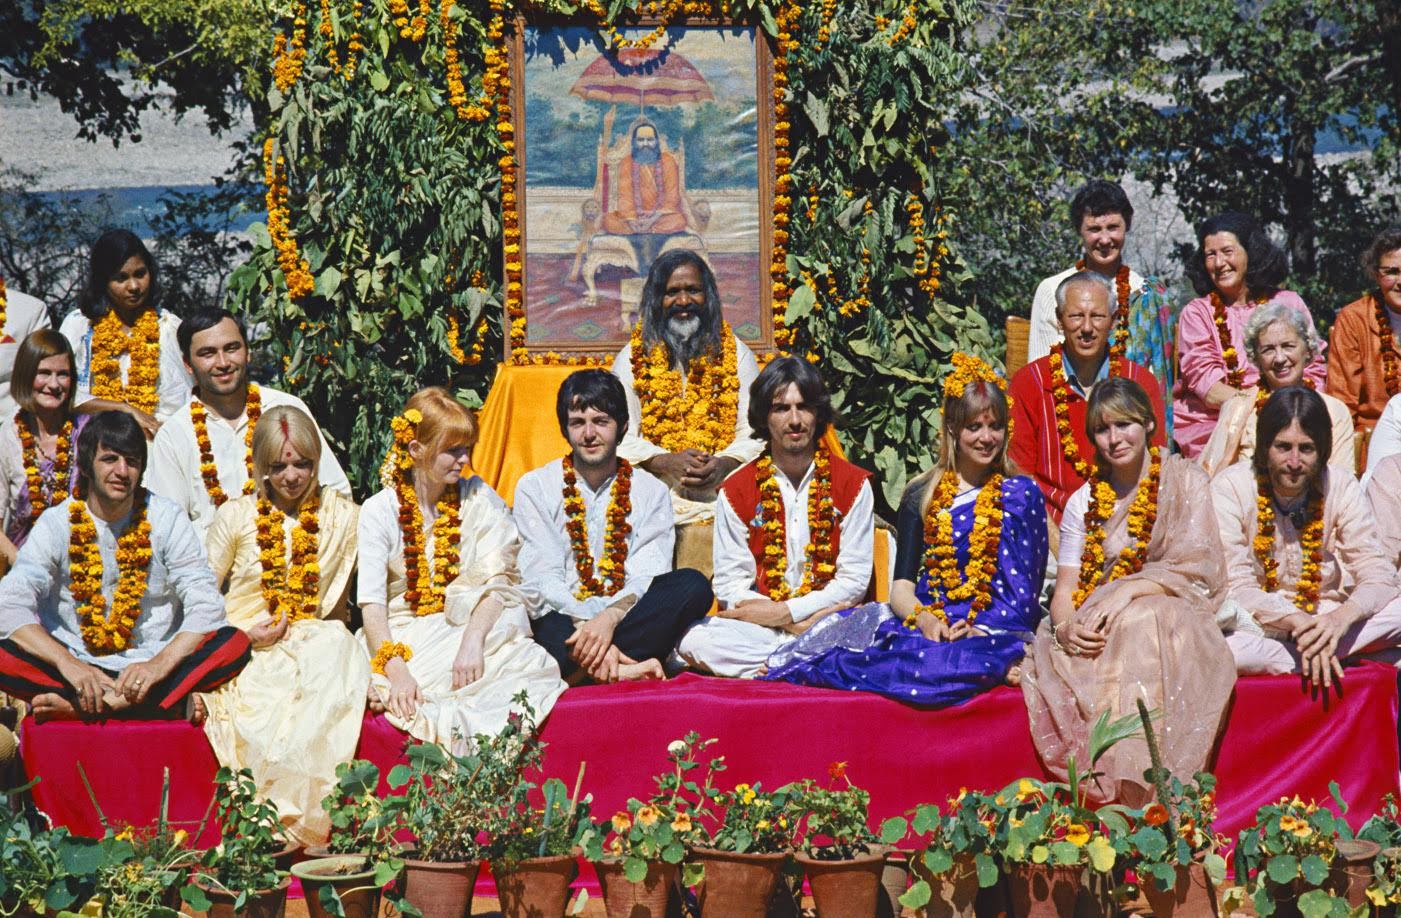 When the Beatles Came to Rishikesh to Relax, Meditate and Write Some Classic Songs